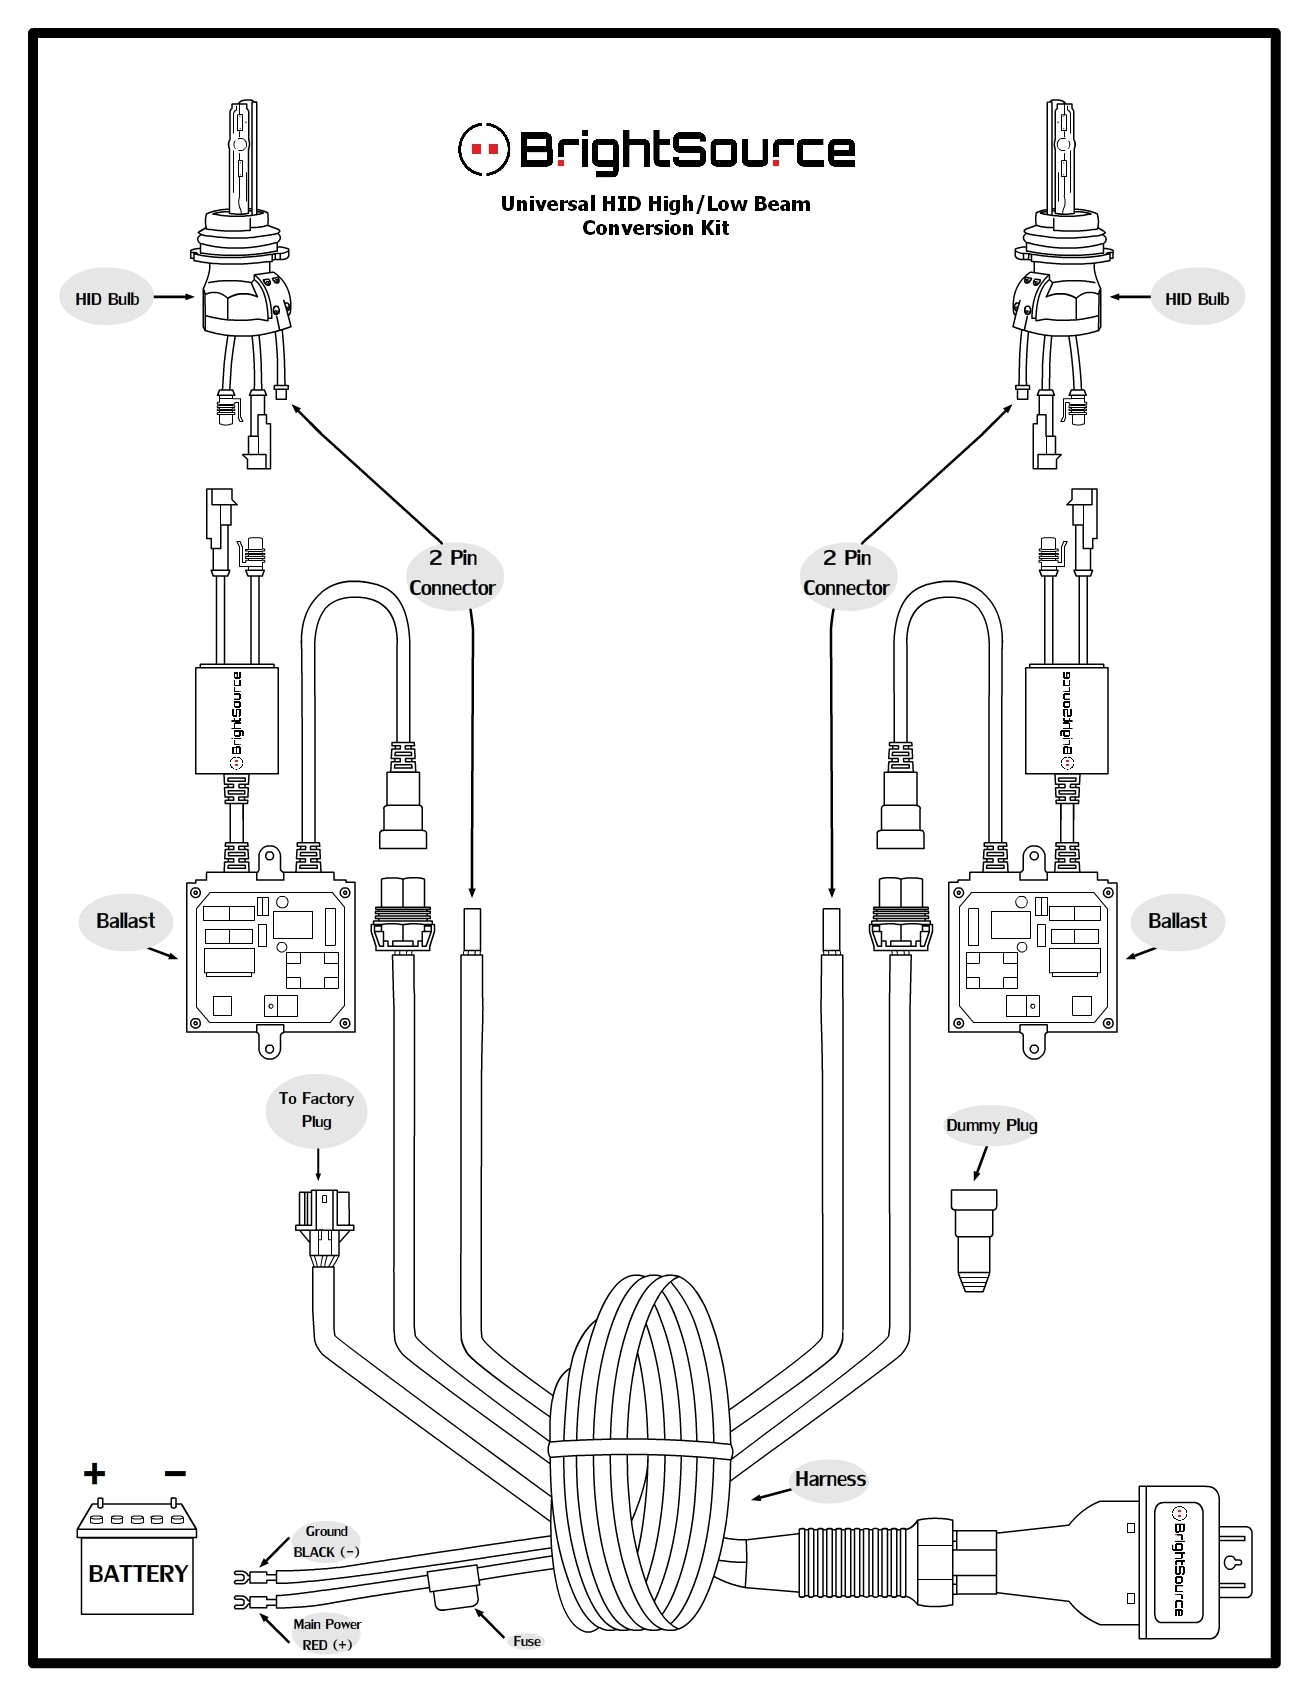 H13 High Low Relay Wiring Diagram | Wiring Liry H Wiring Plug Diagram on h13 hid wiring, dodge oem parts diagram, project diagram, h13 bulb wiring, h13 connector diagram,